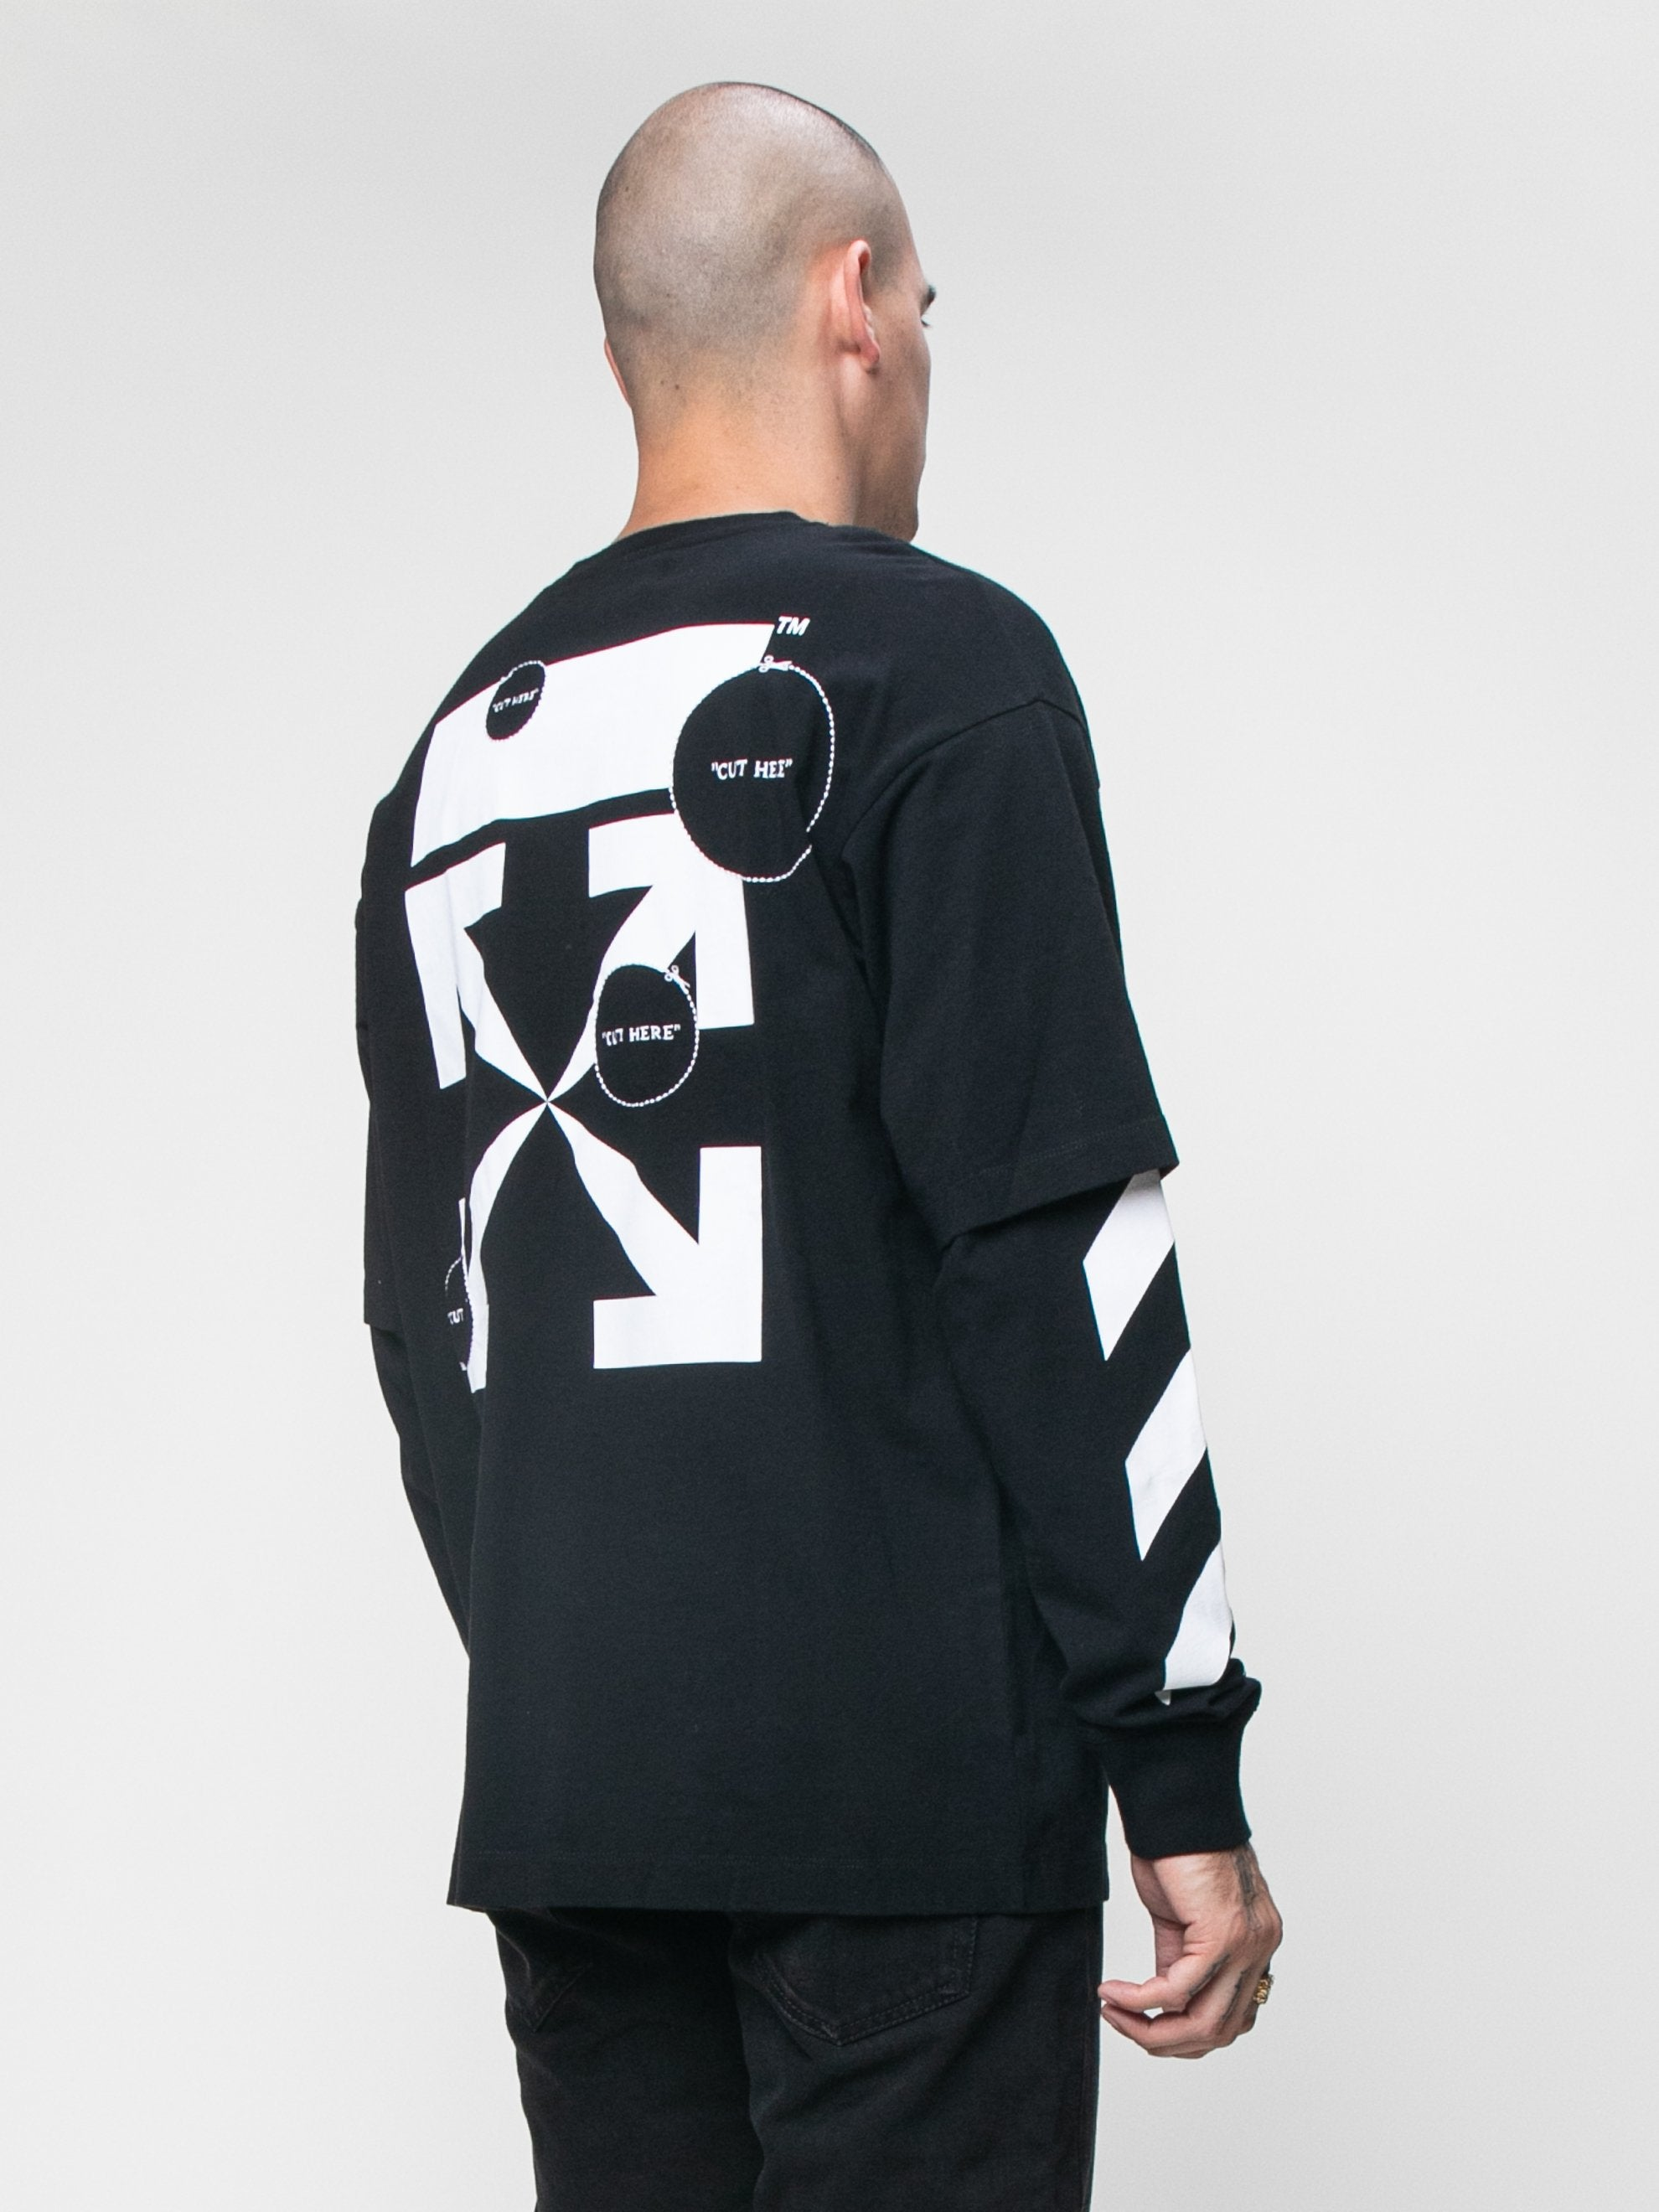 Black 'Cut Here' Long Sleeve T-Shirt 5